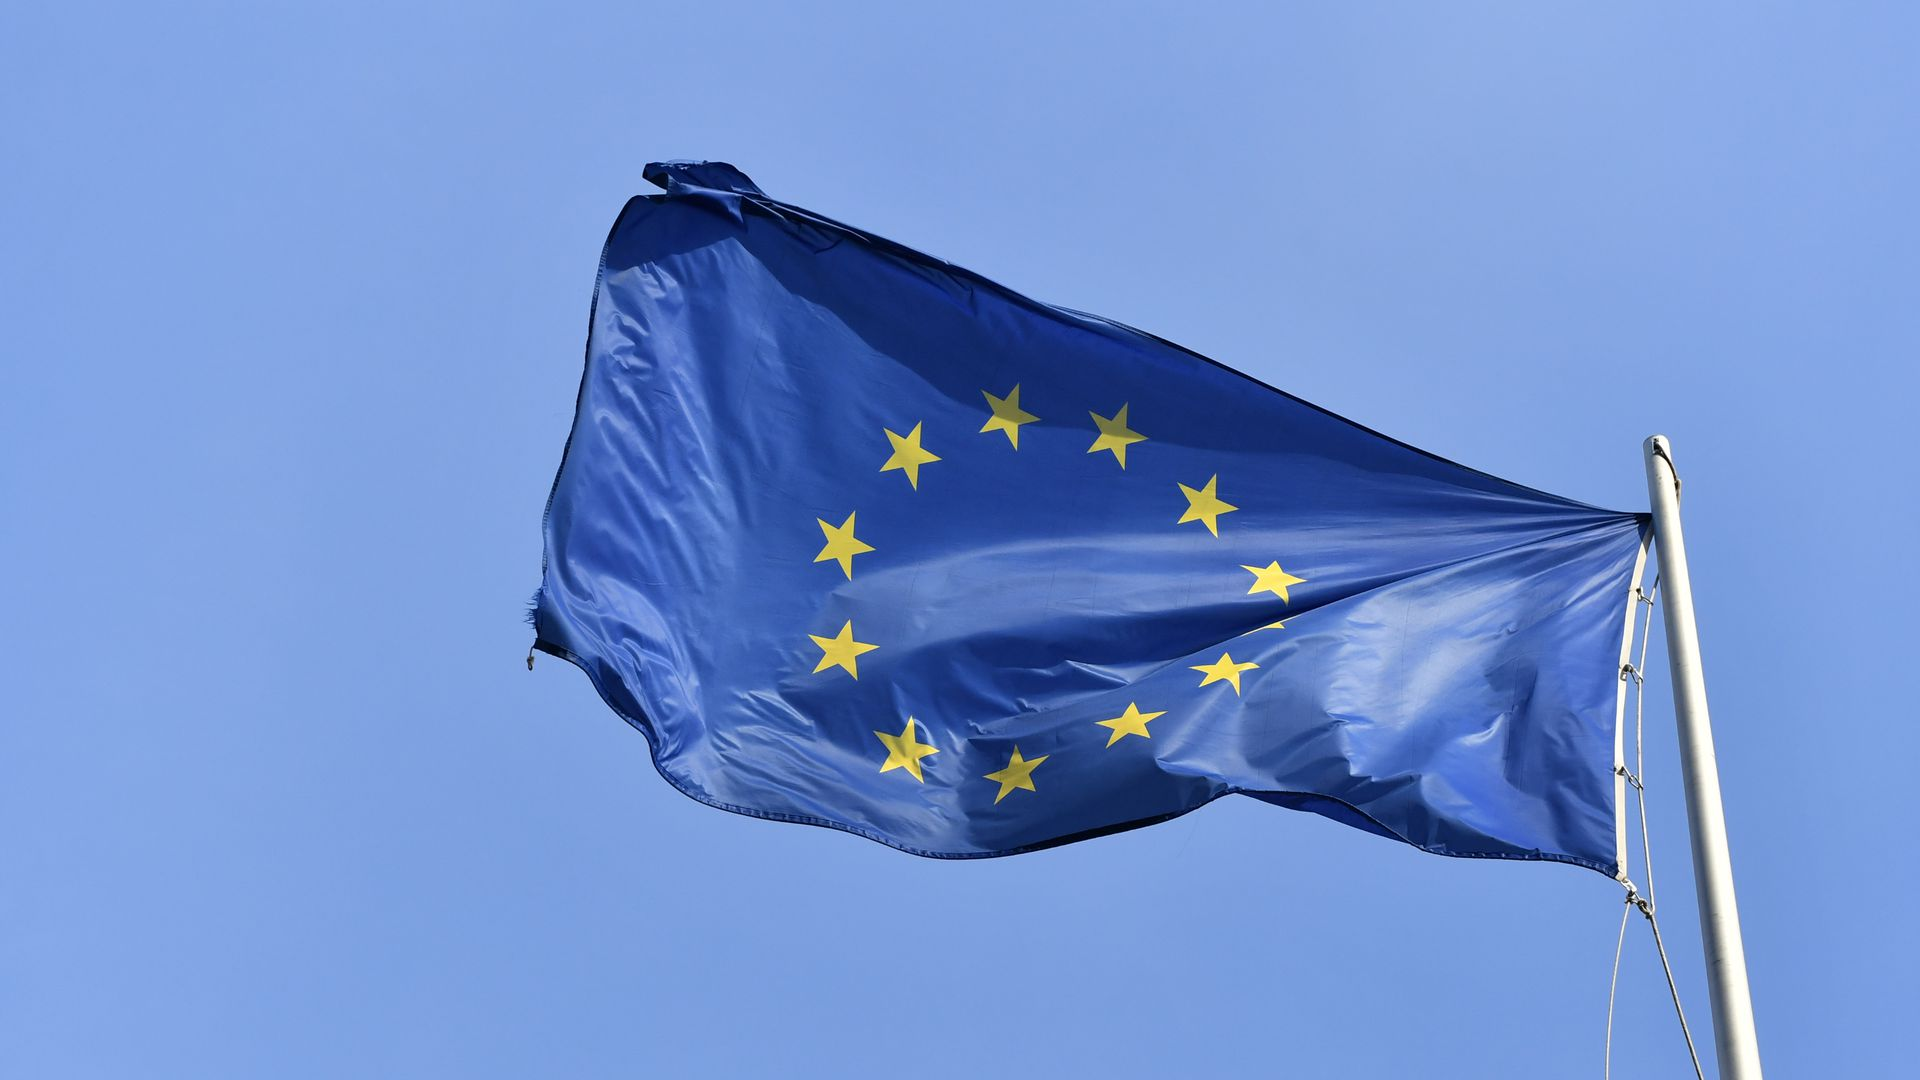 A European flag waving